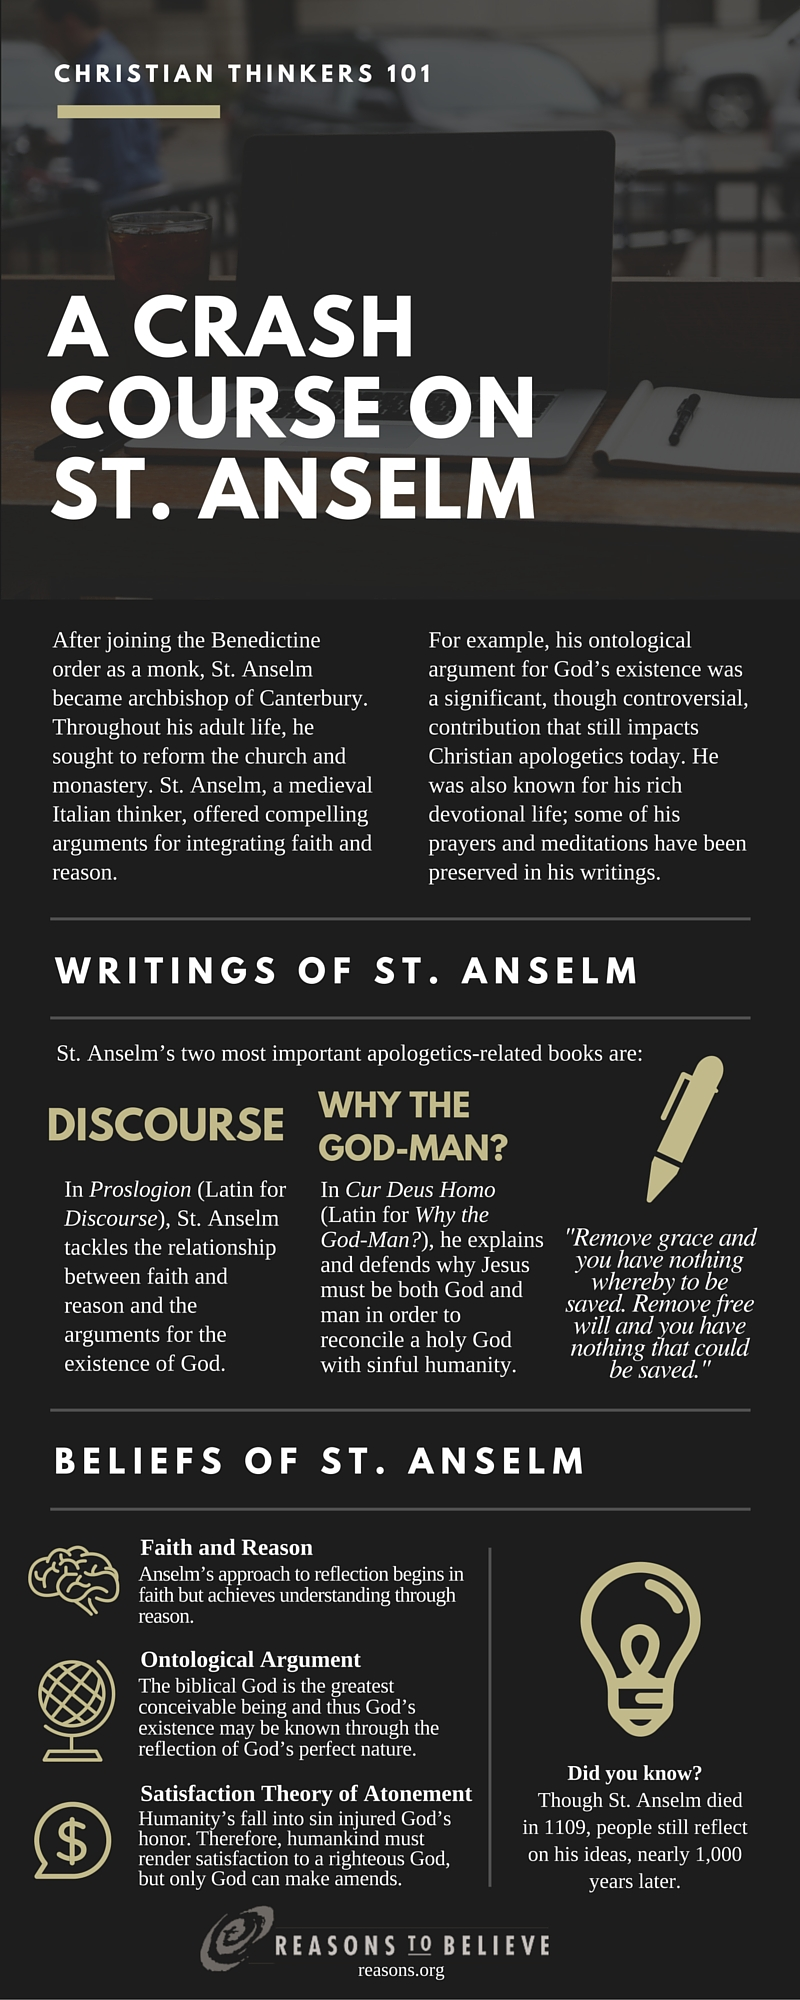 blog__inline--christian-thinkers-101-a-crash-course-on-st-anselm